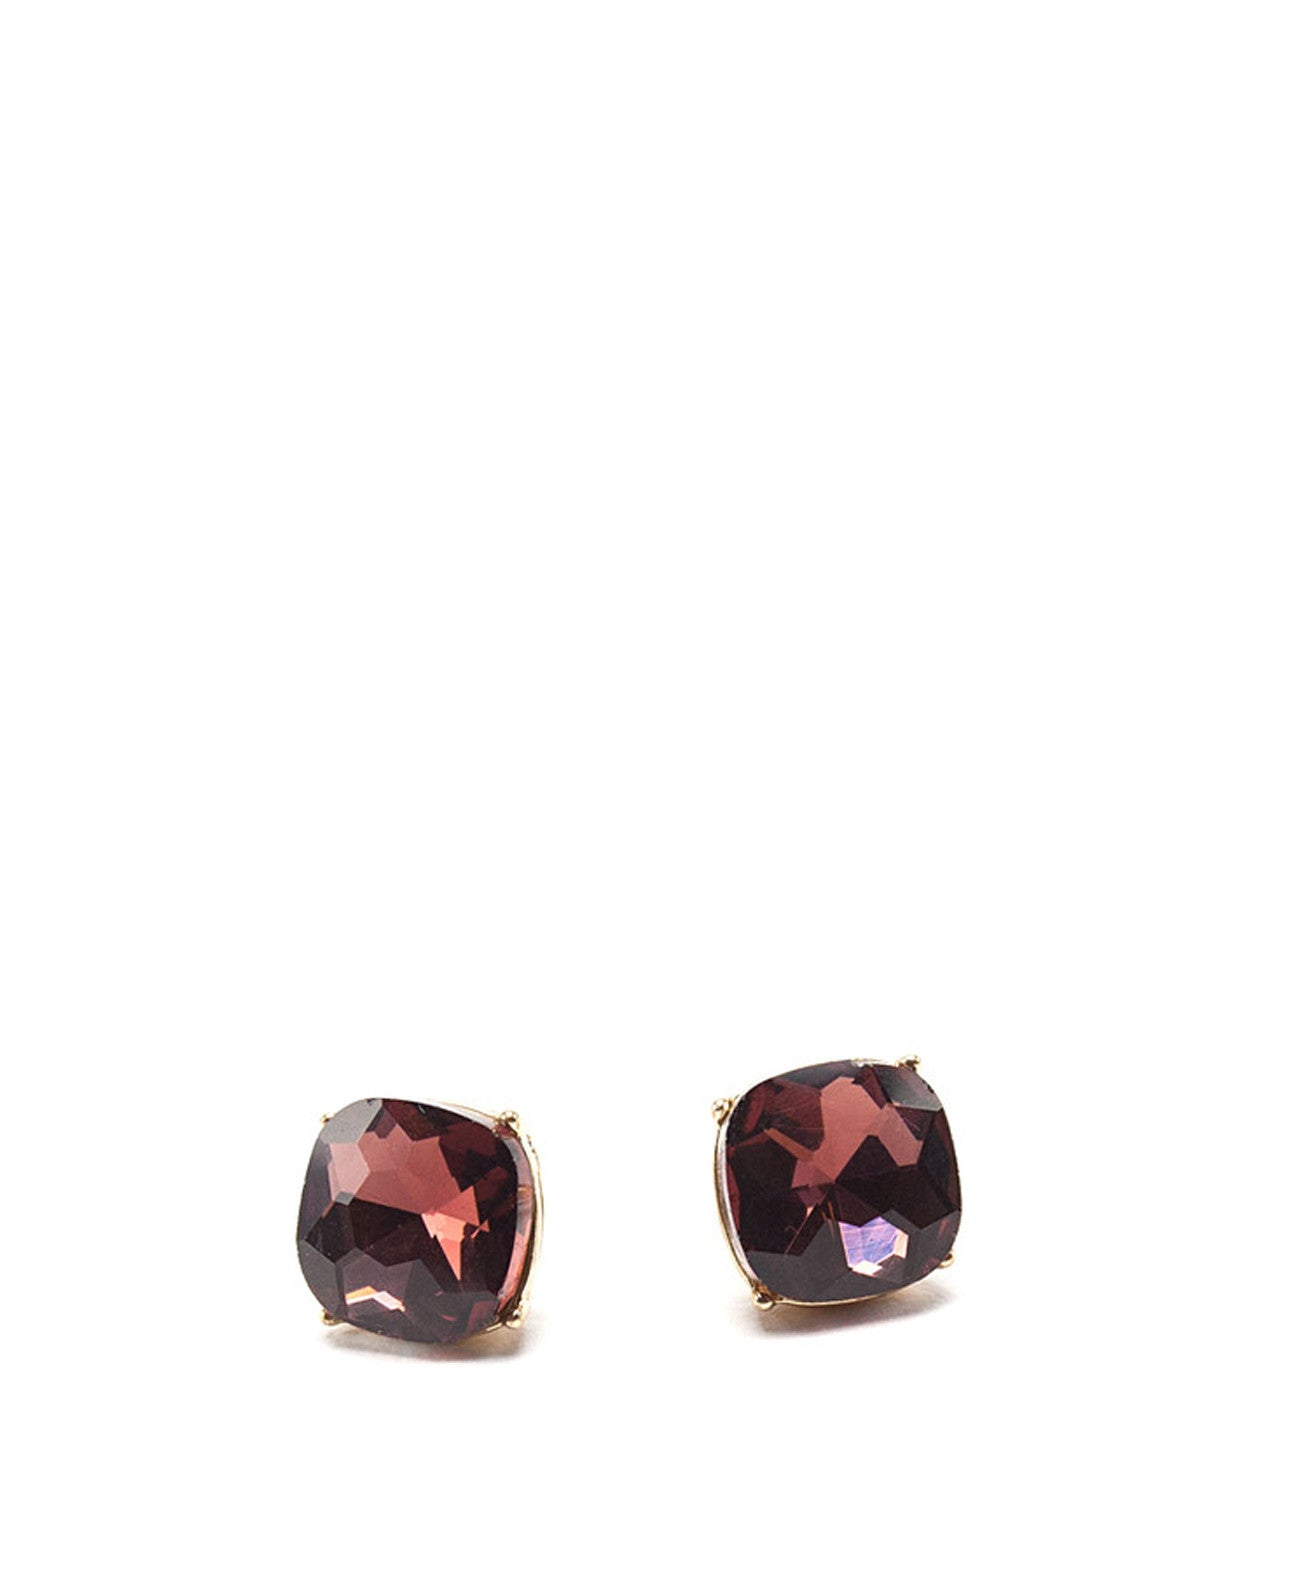 Dark Marsala Gem Stud Earrings by Surii - Koko & Palenki - 1